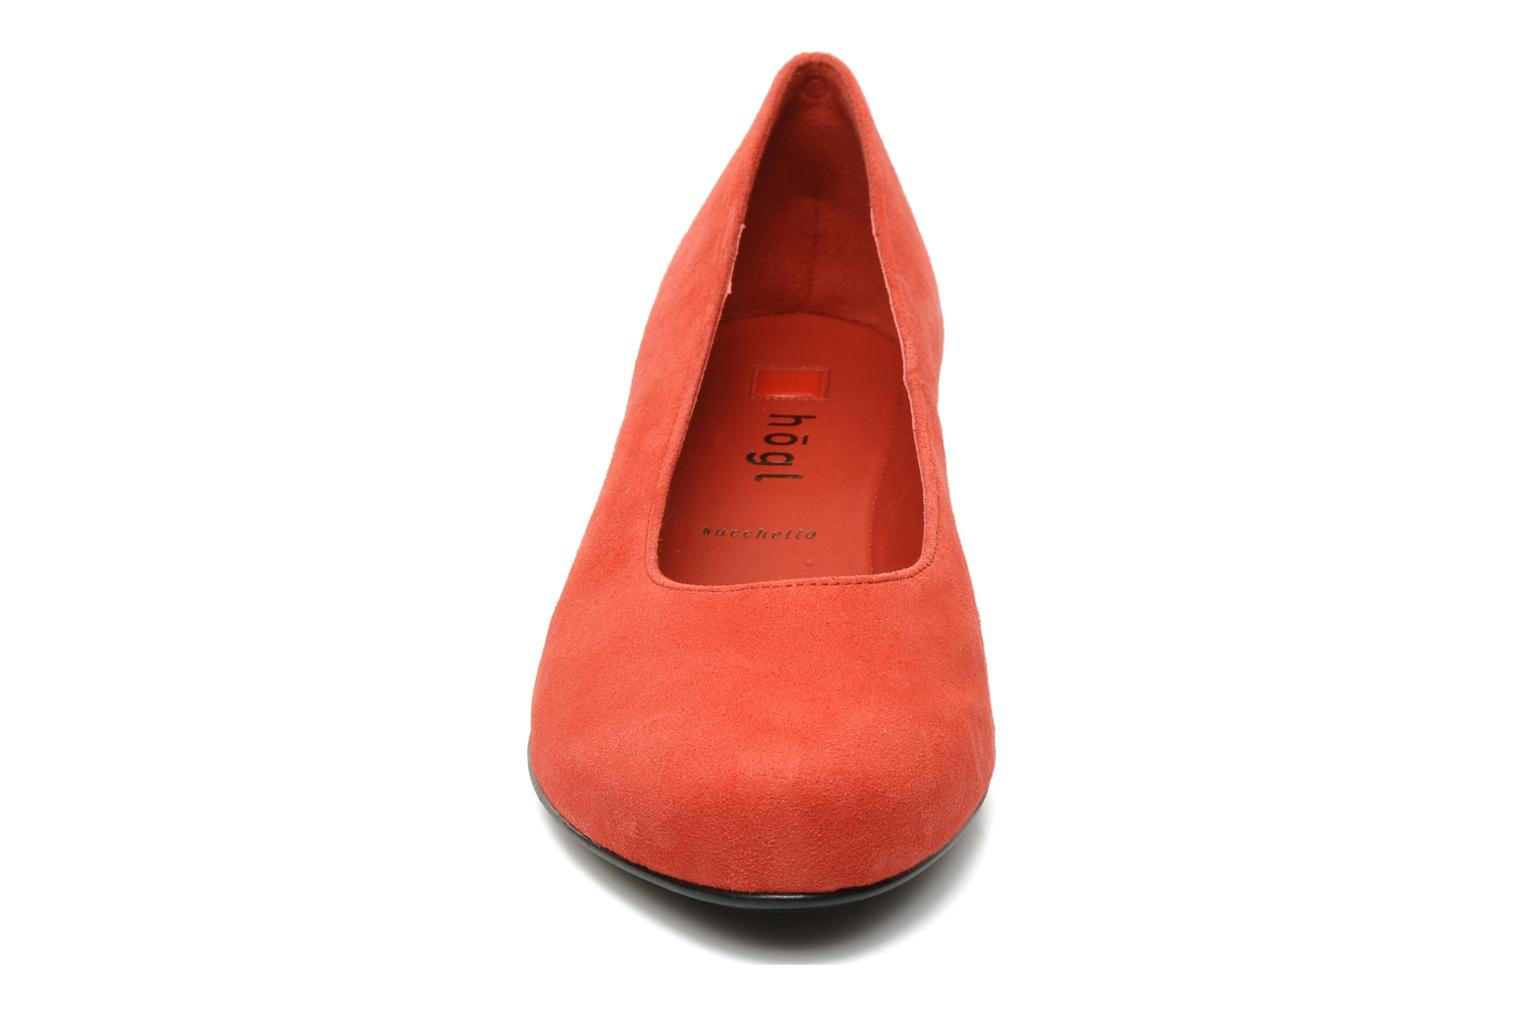 Compina 4000 red